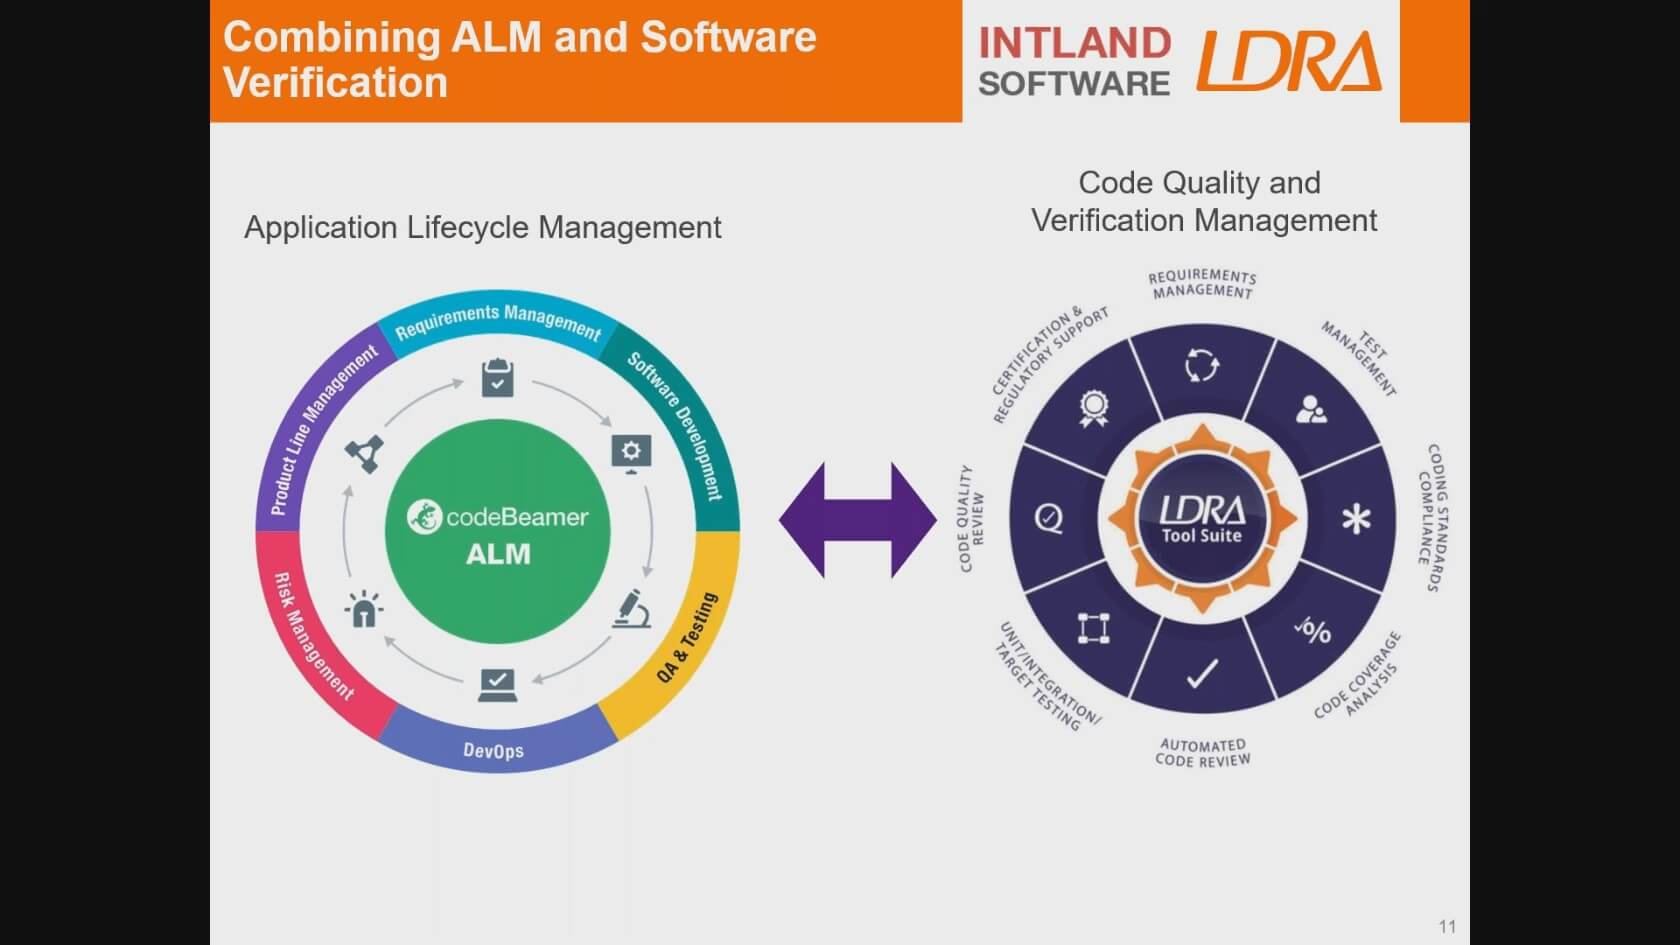 ldra_intland_critical_embedded_software_featured_image Webinar Recordings